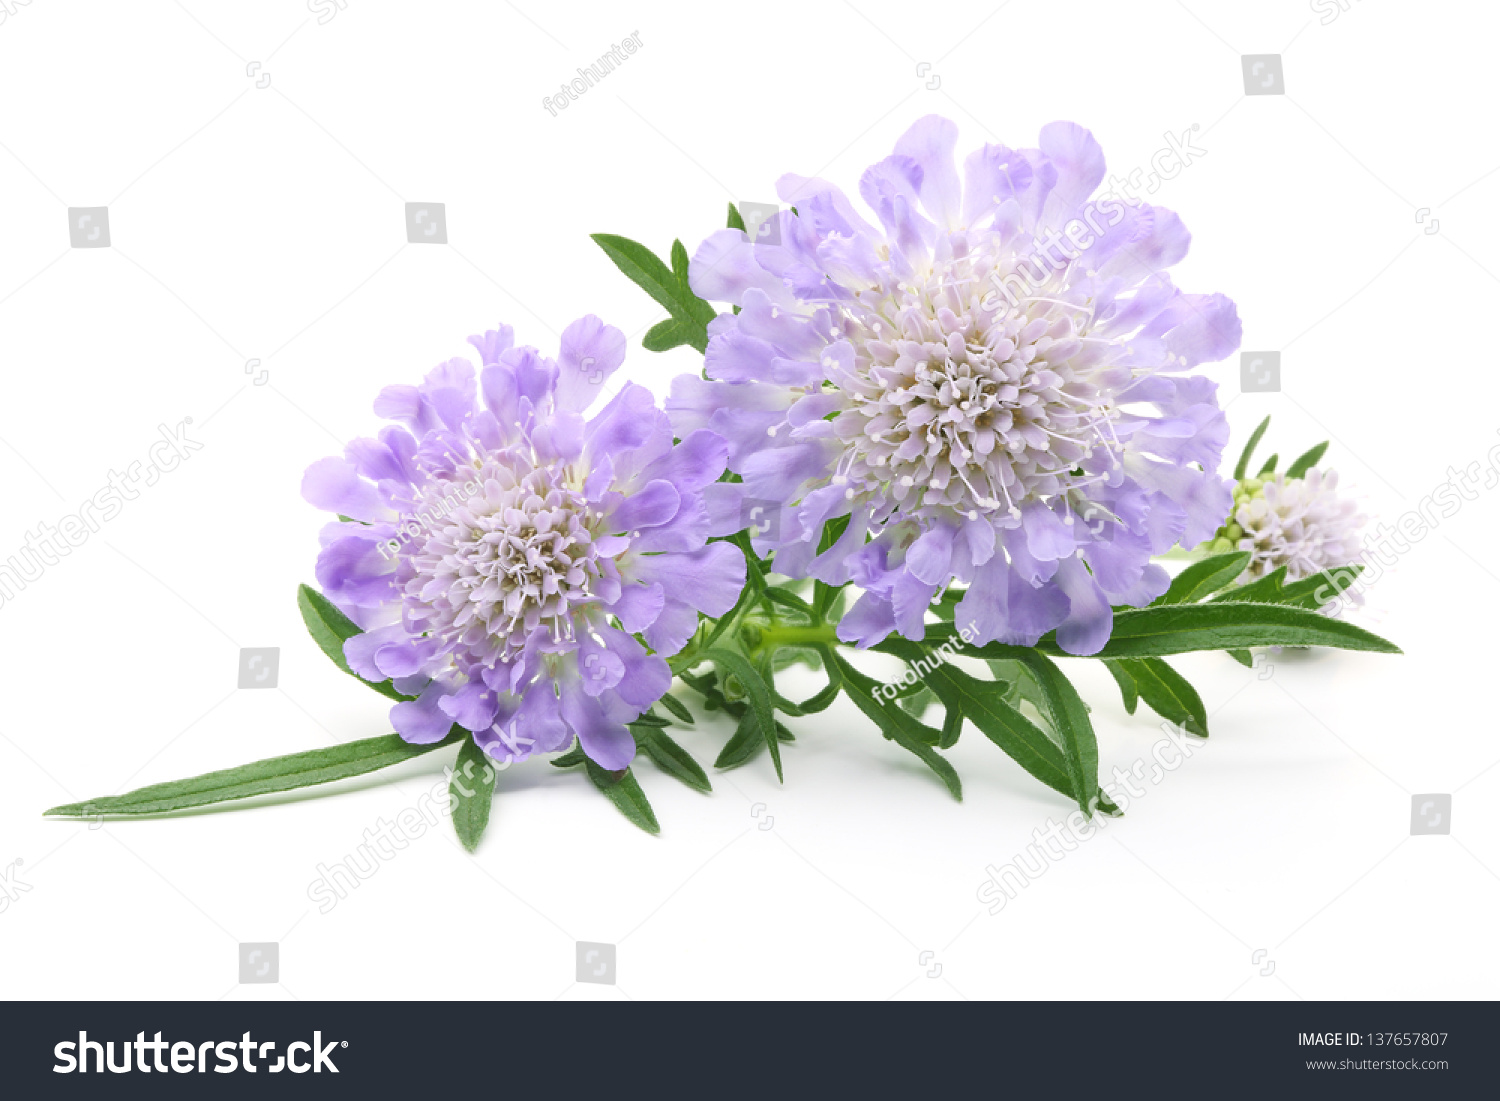 Bouquet Of Pincushion Flowers In A White Background Ez Canvas